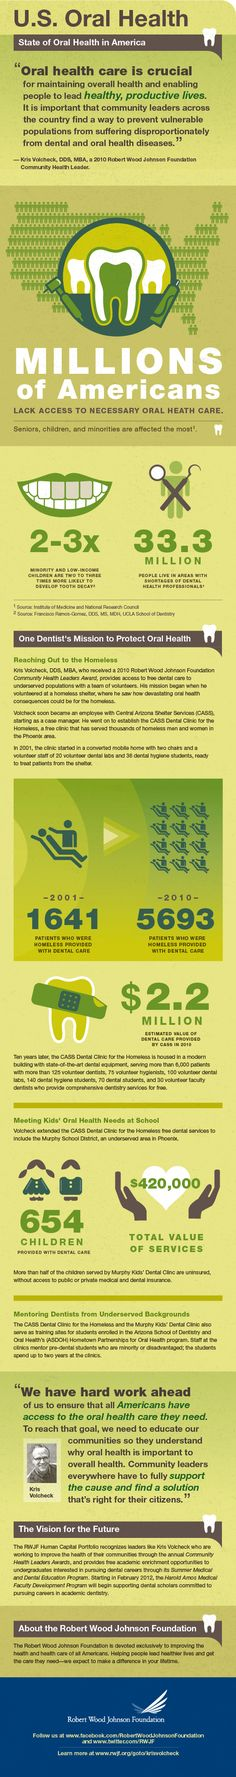 Infographic created on behalf of two clients – Robert Wood Johnson Foundation and U.S. Oral Health